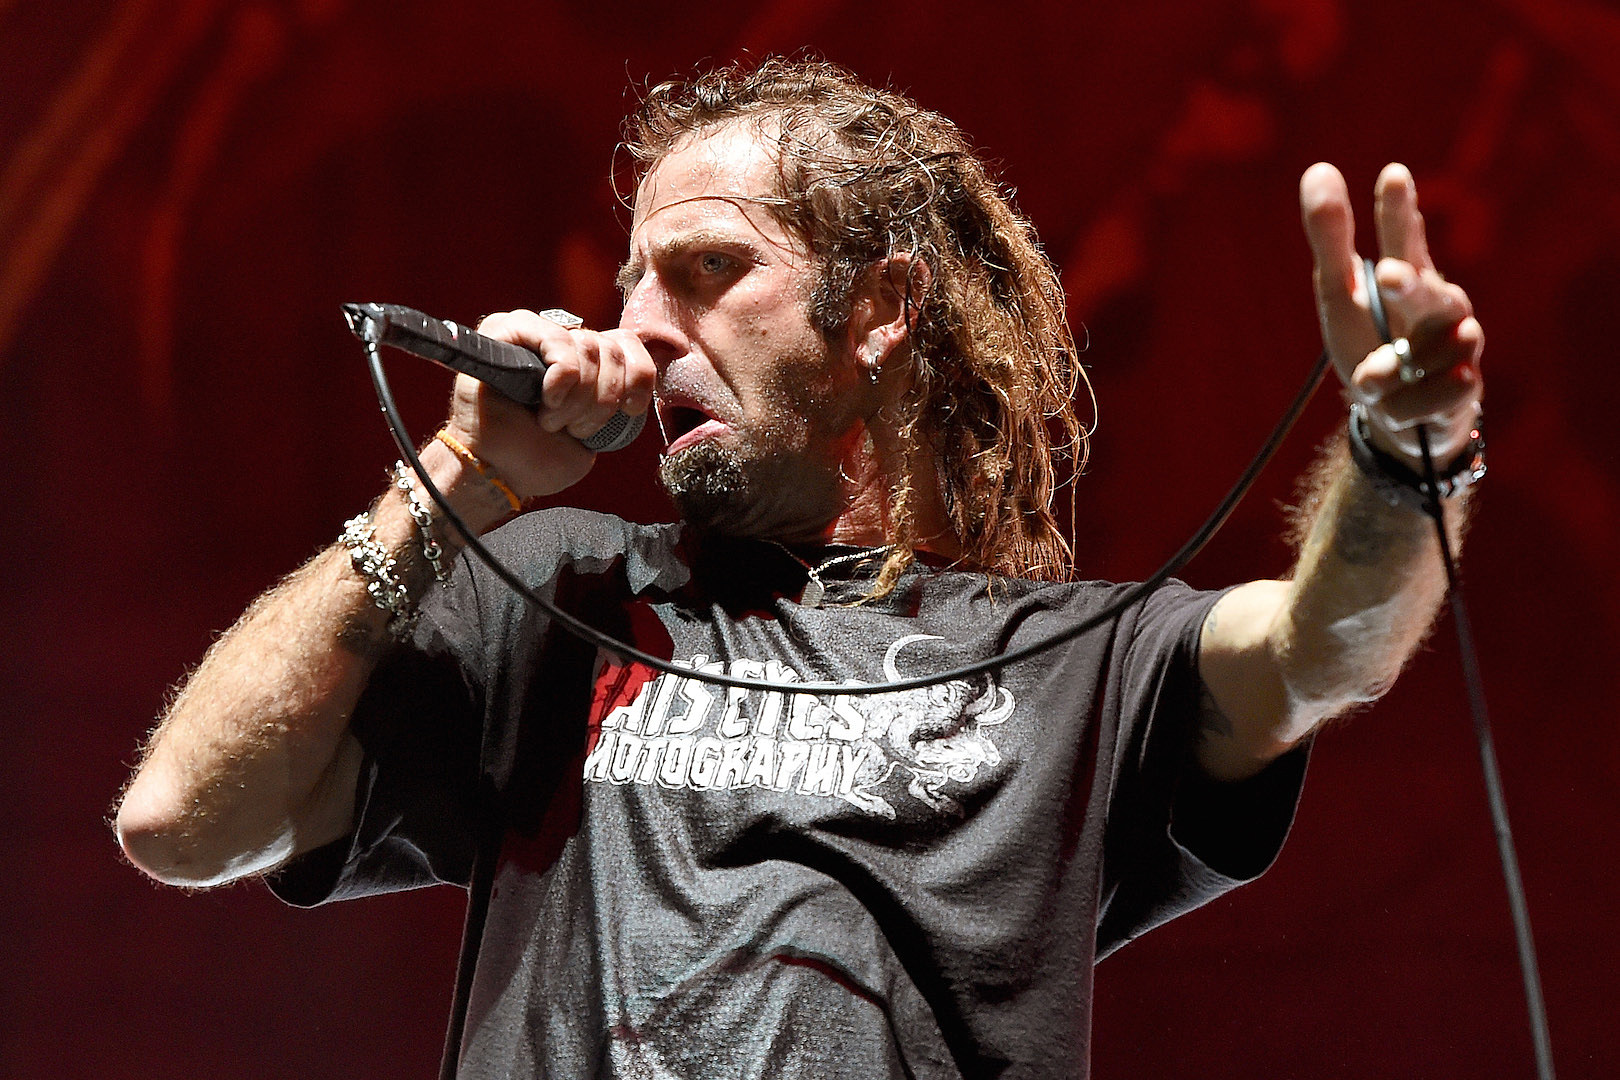 5 Years Ago: Lamb of God Vocalist Randy Blythe Arrested in Prague and Accused of Manslaughter